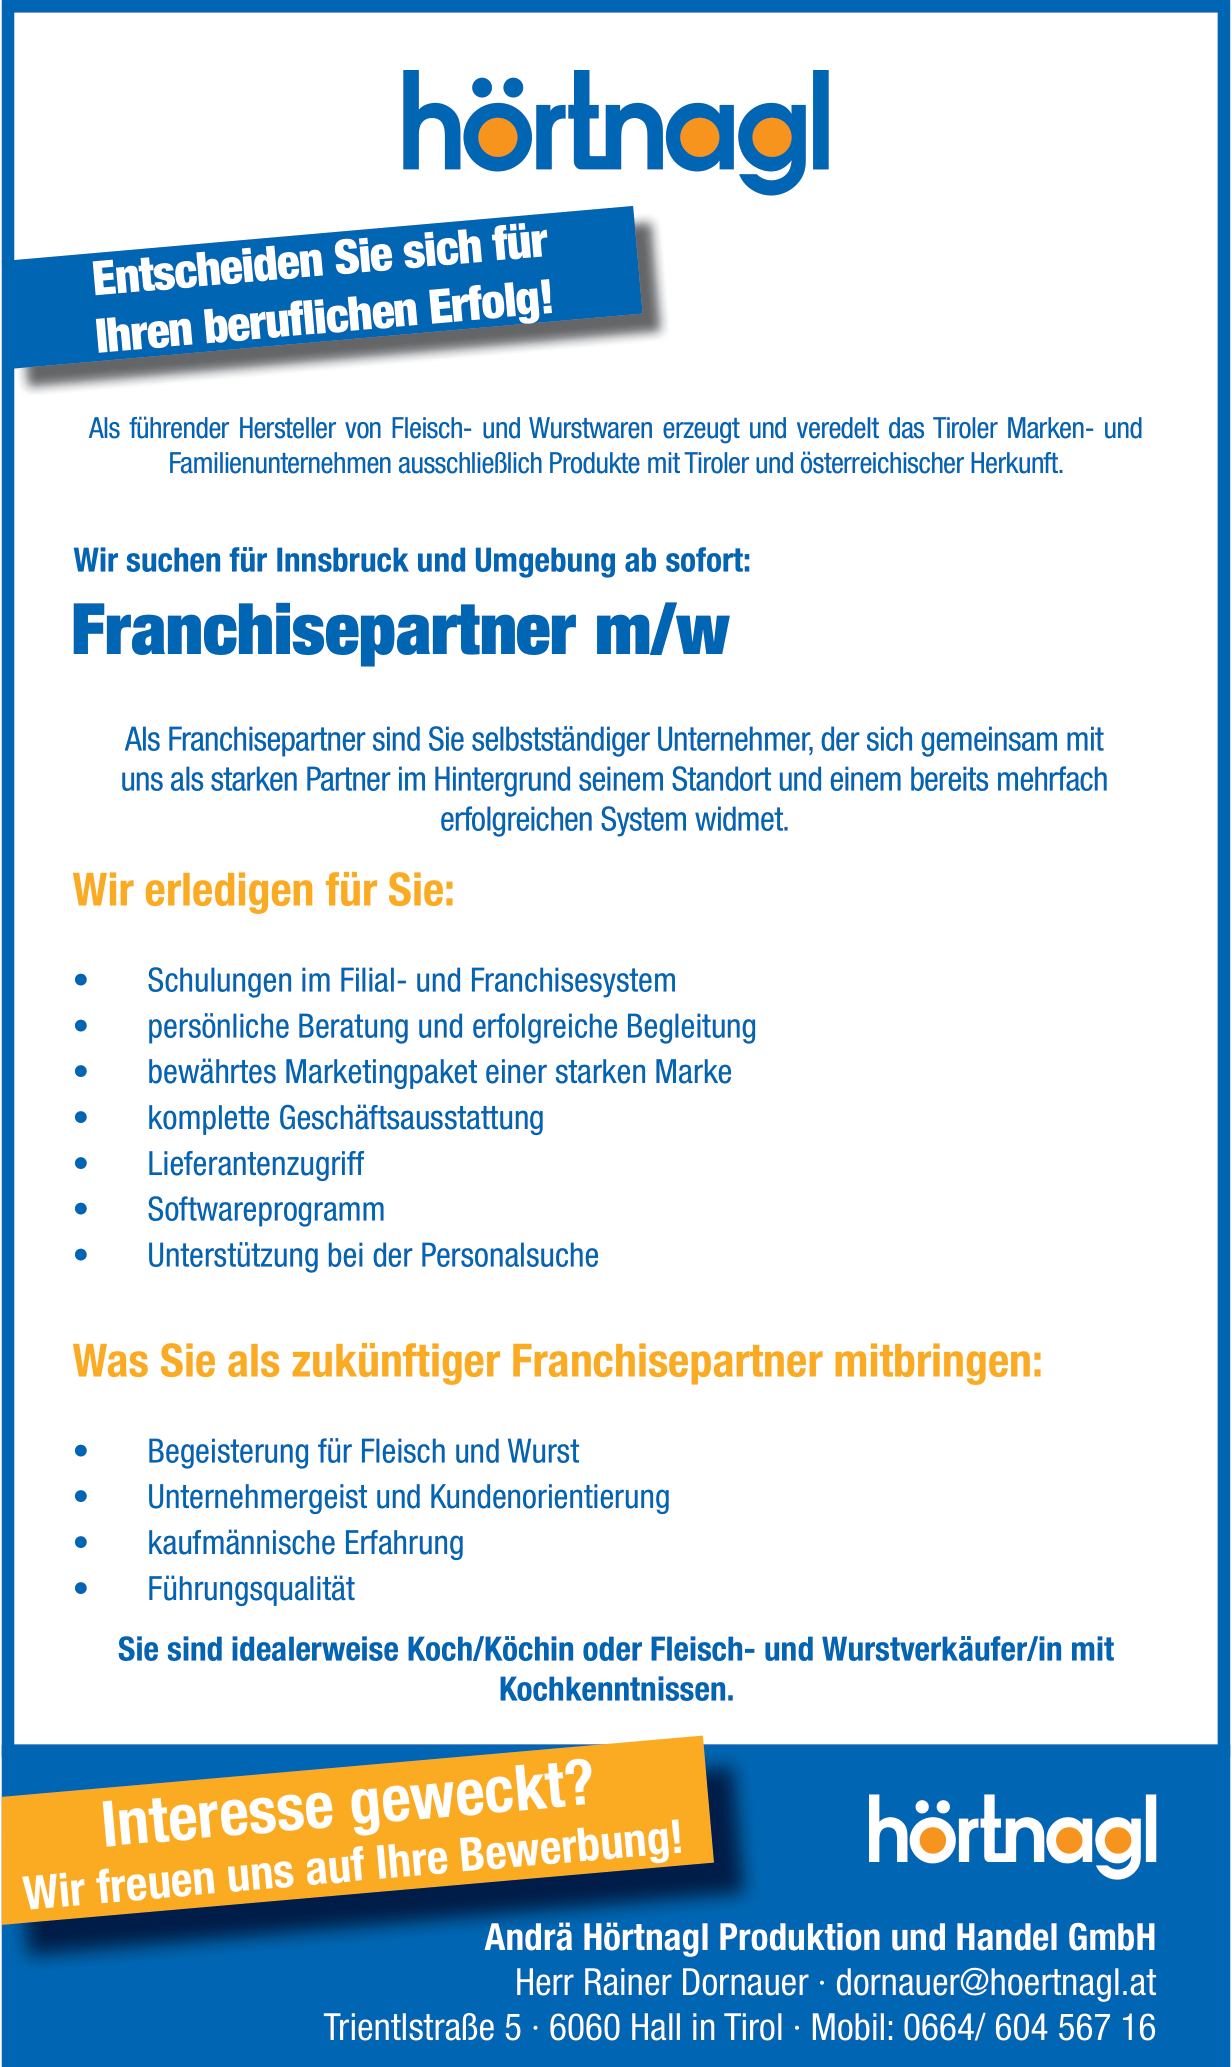 Franchisepartner m/w